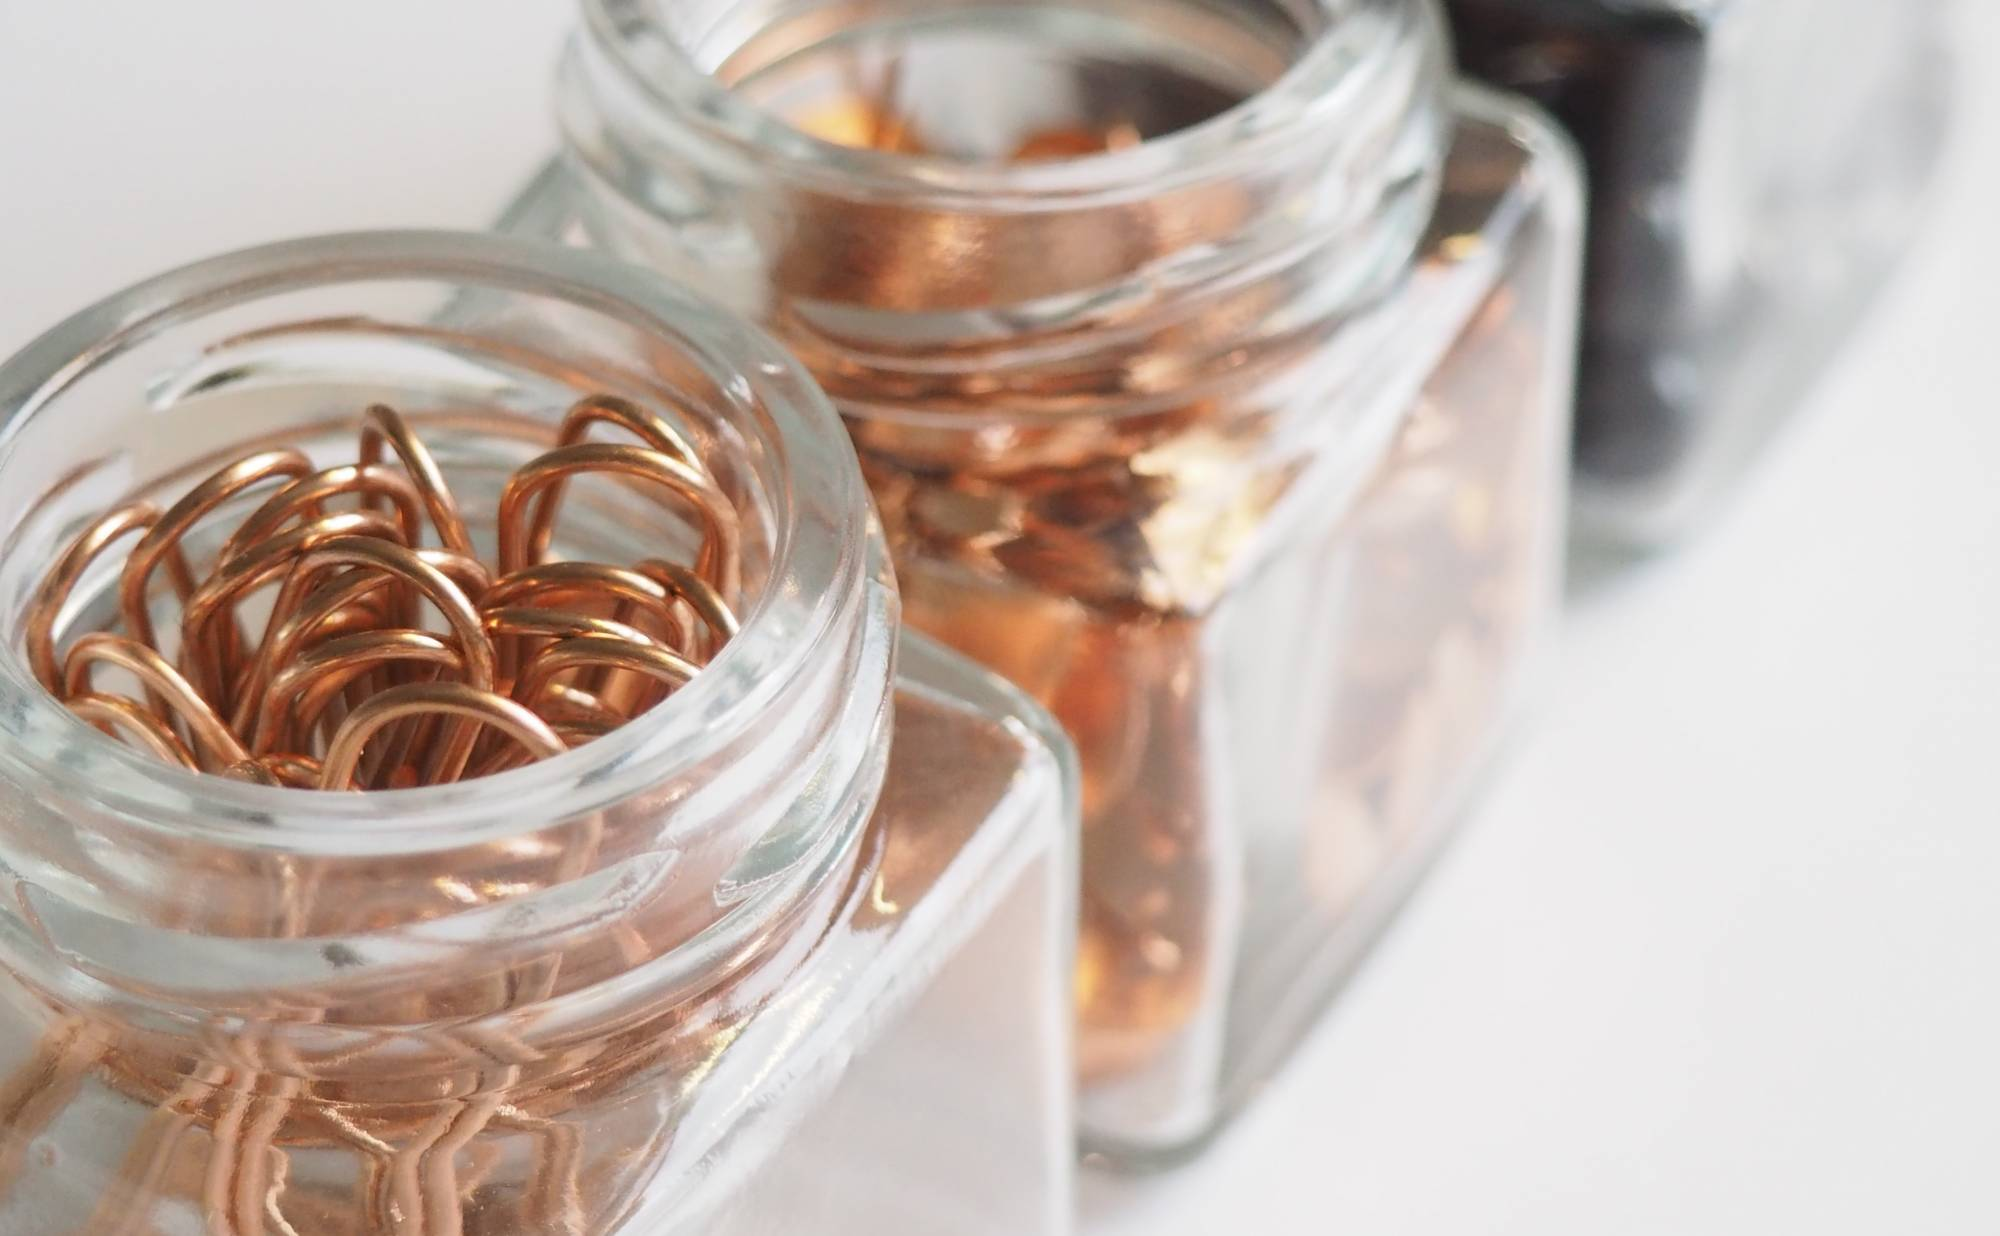 Copper in jars